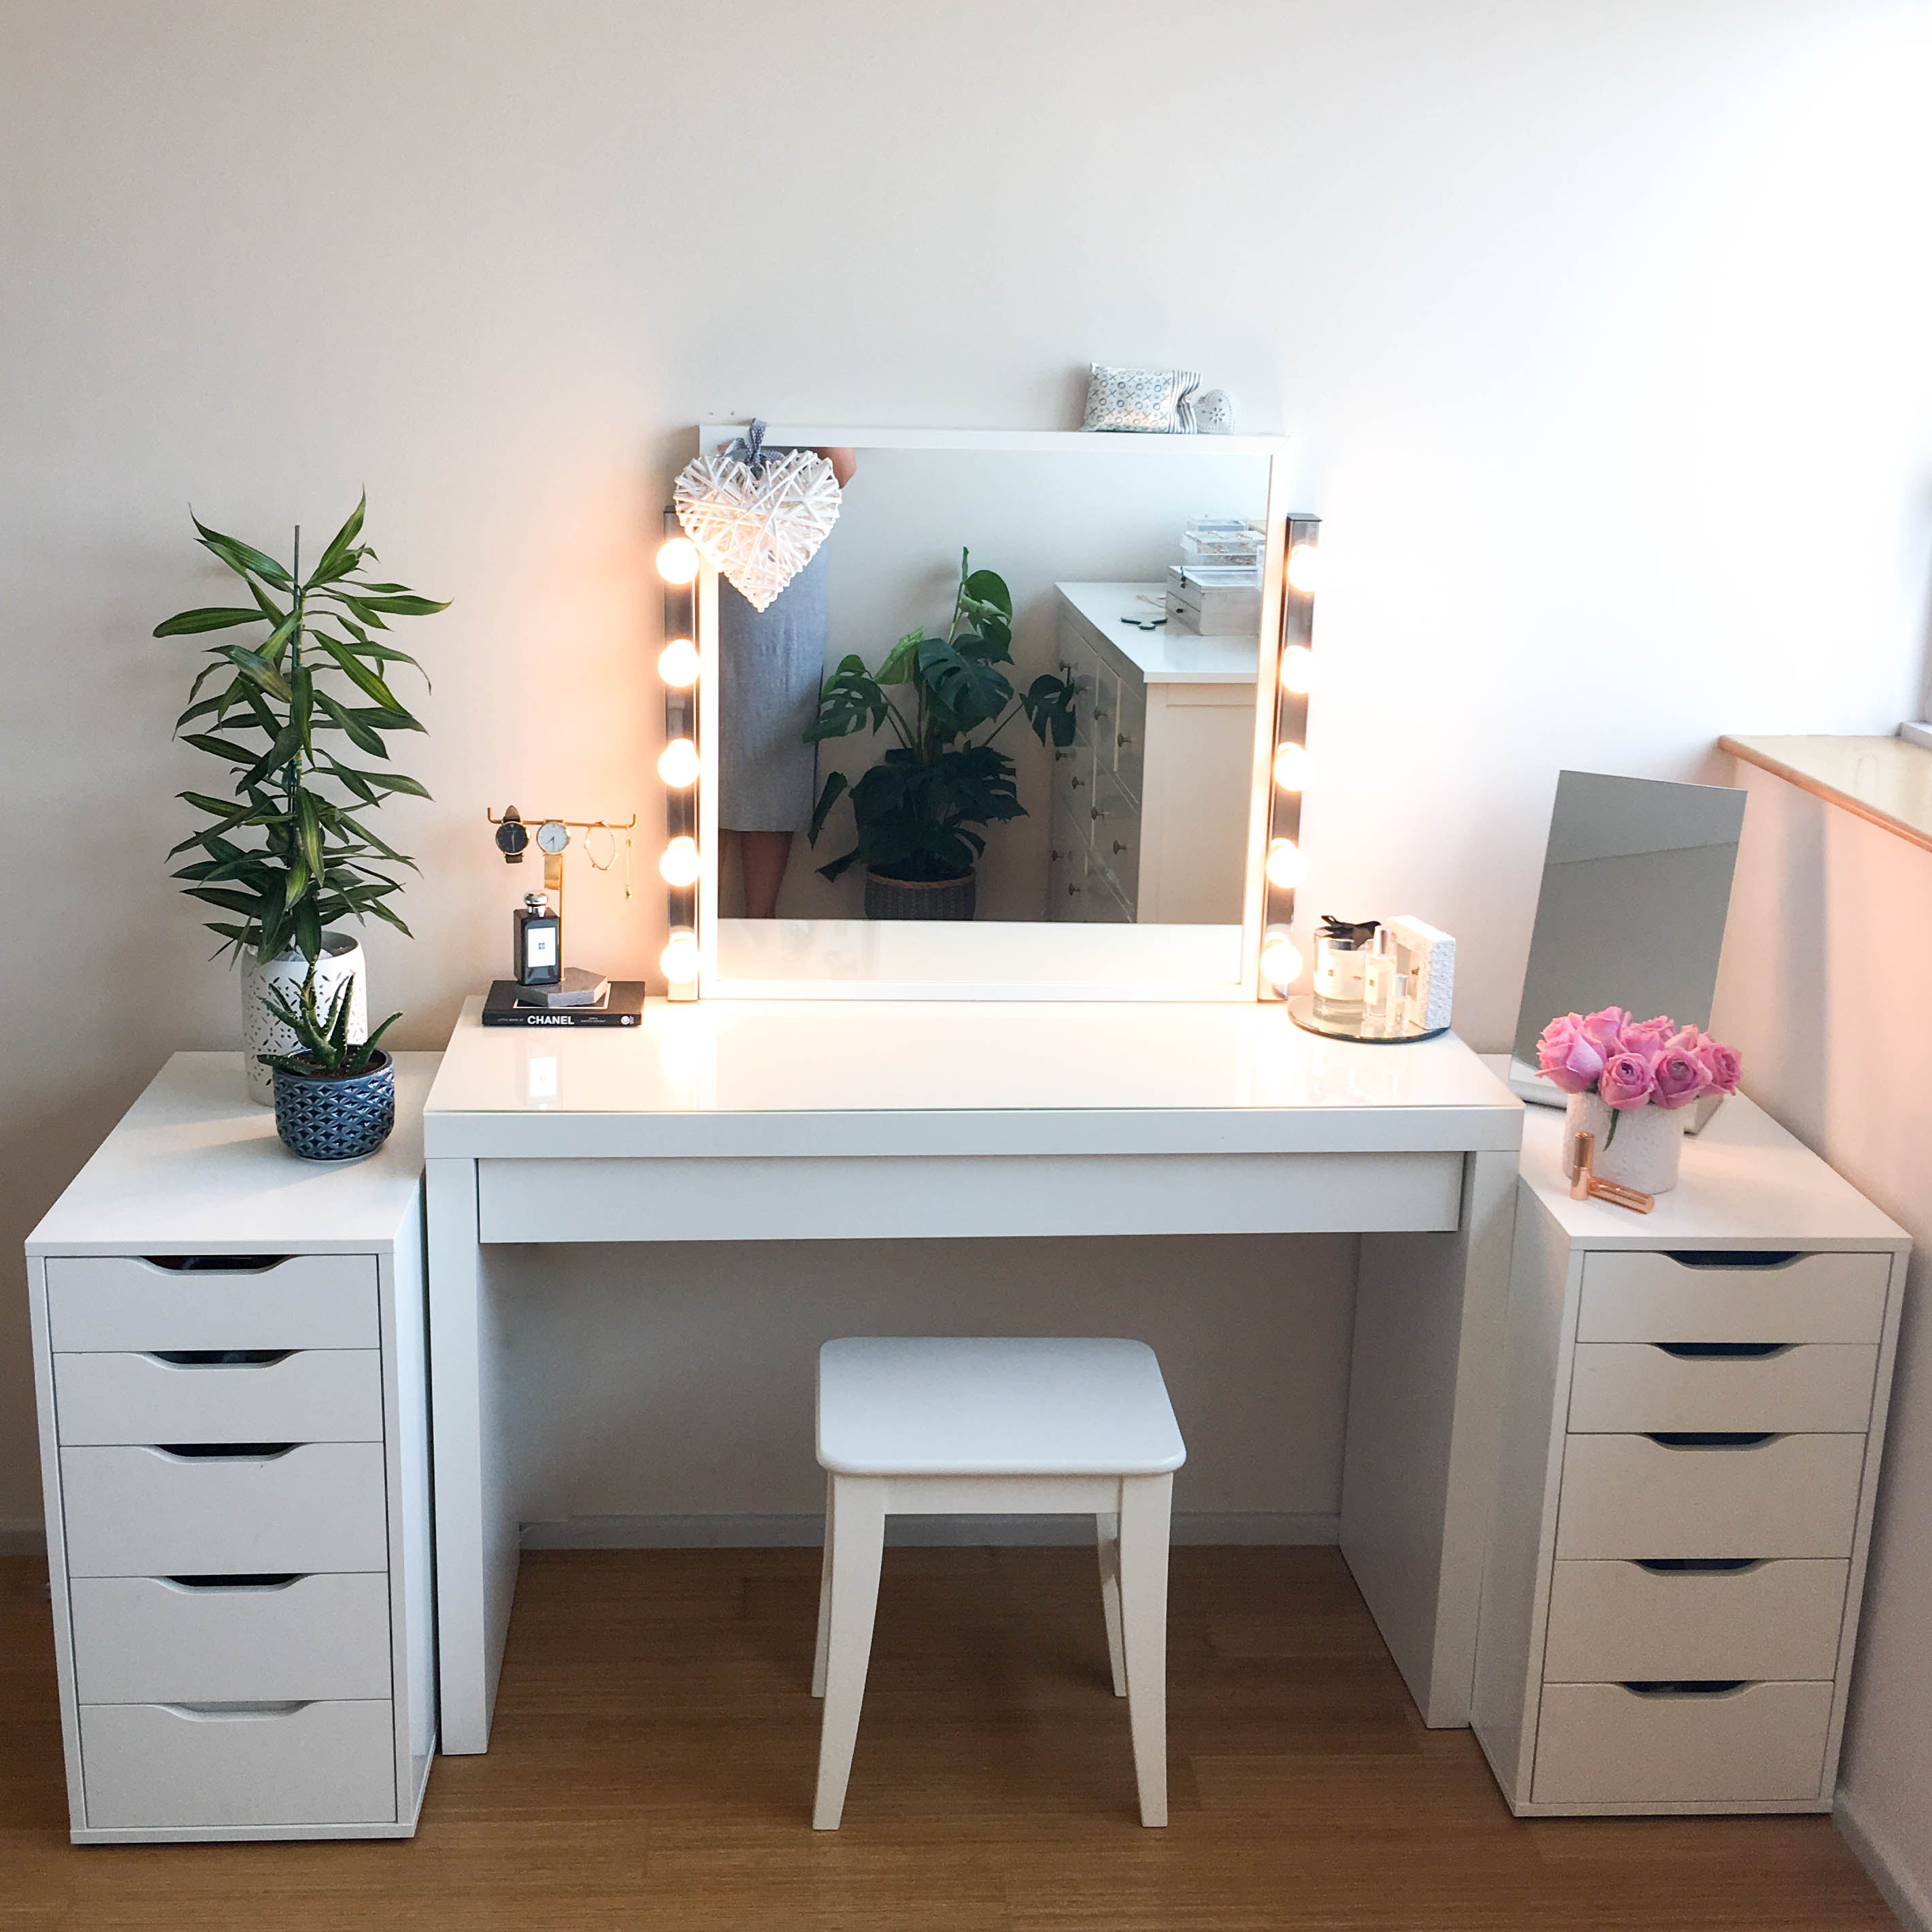 My diy dressing table and vanity mirror claire baker for Vanity dressing table